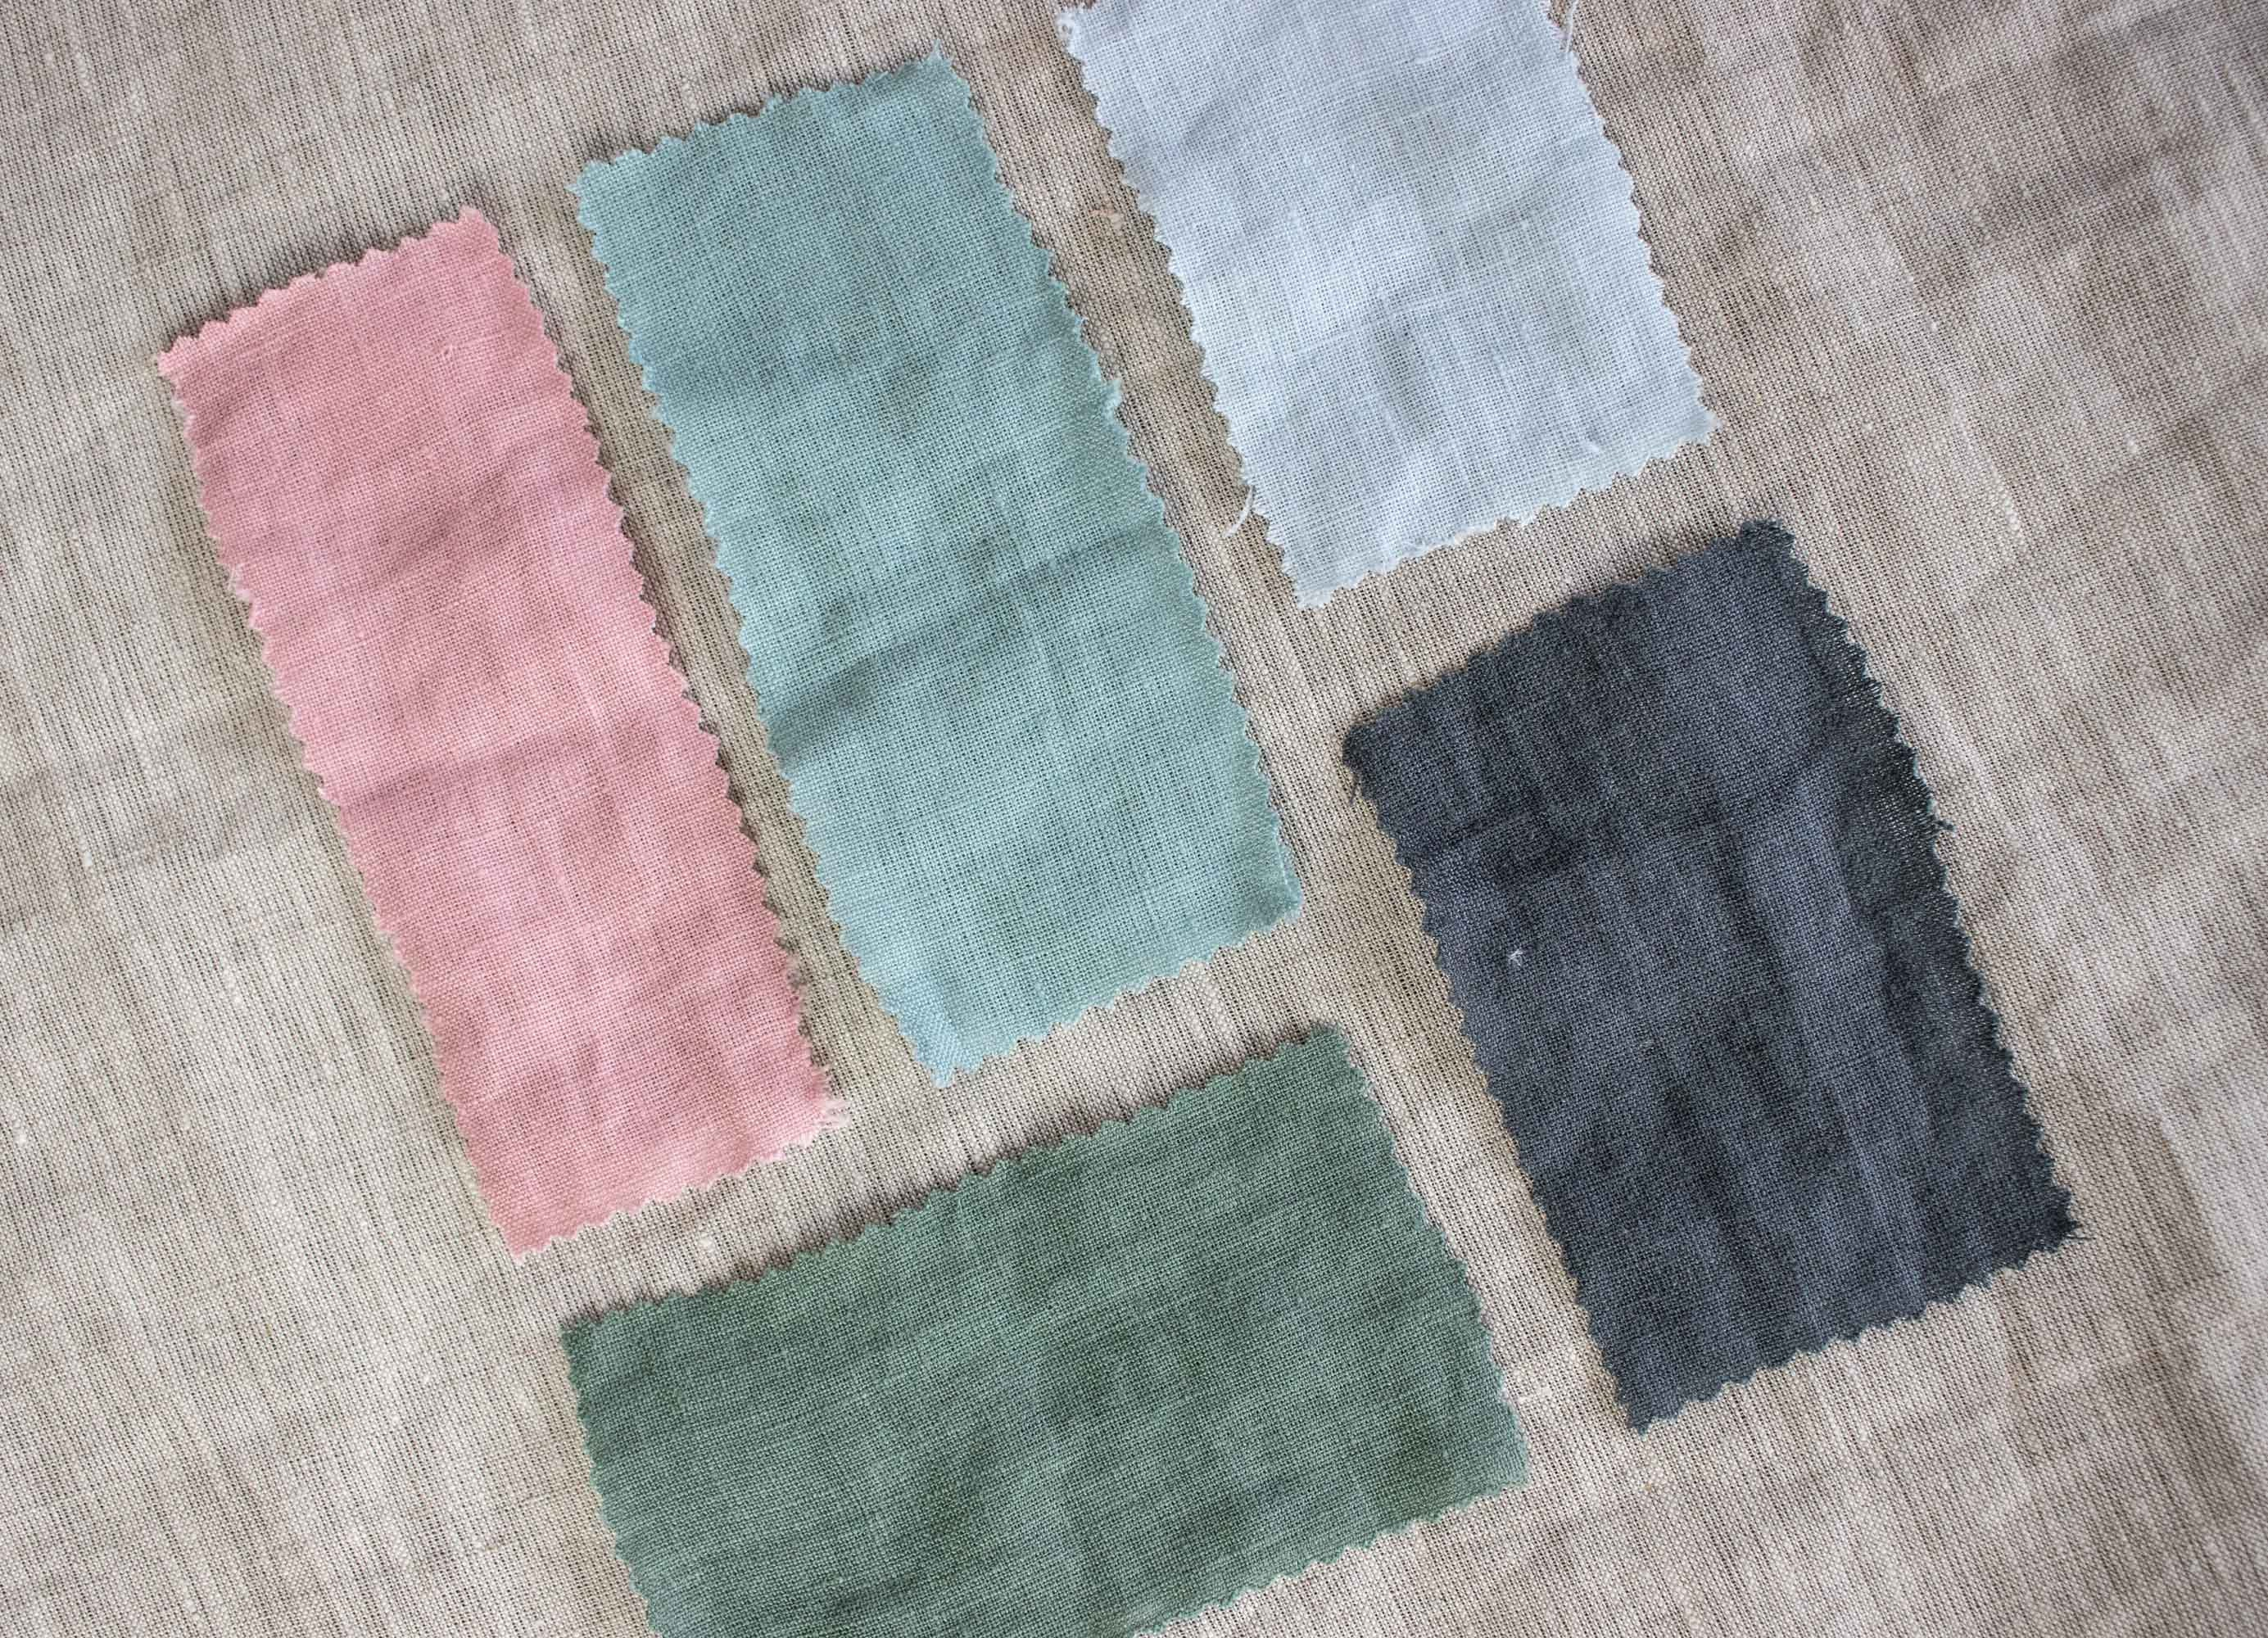 Colors+ Stonewashed linen duvet cover set with pillowcases - Sage, moss green Sea linen Light sky blue Charcoal grey duvet cover